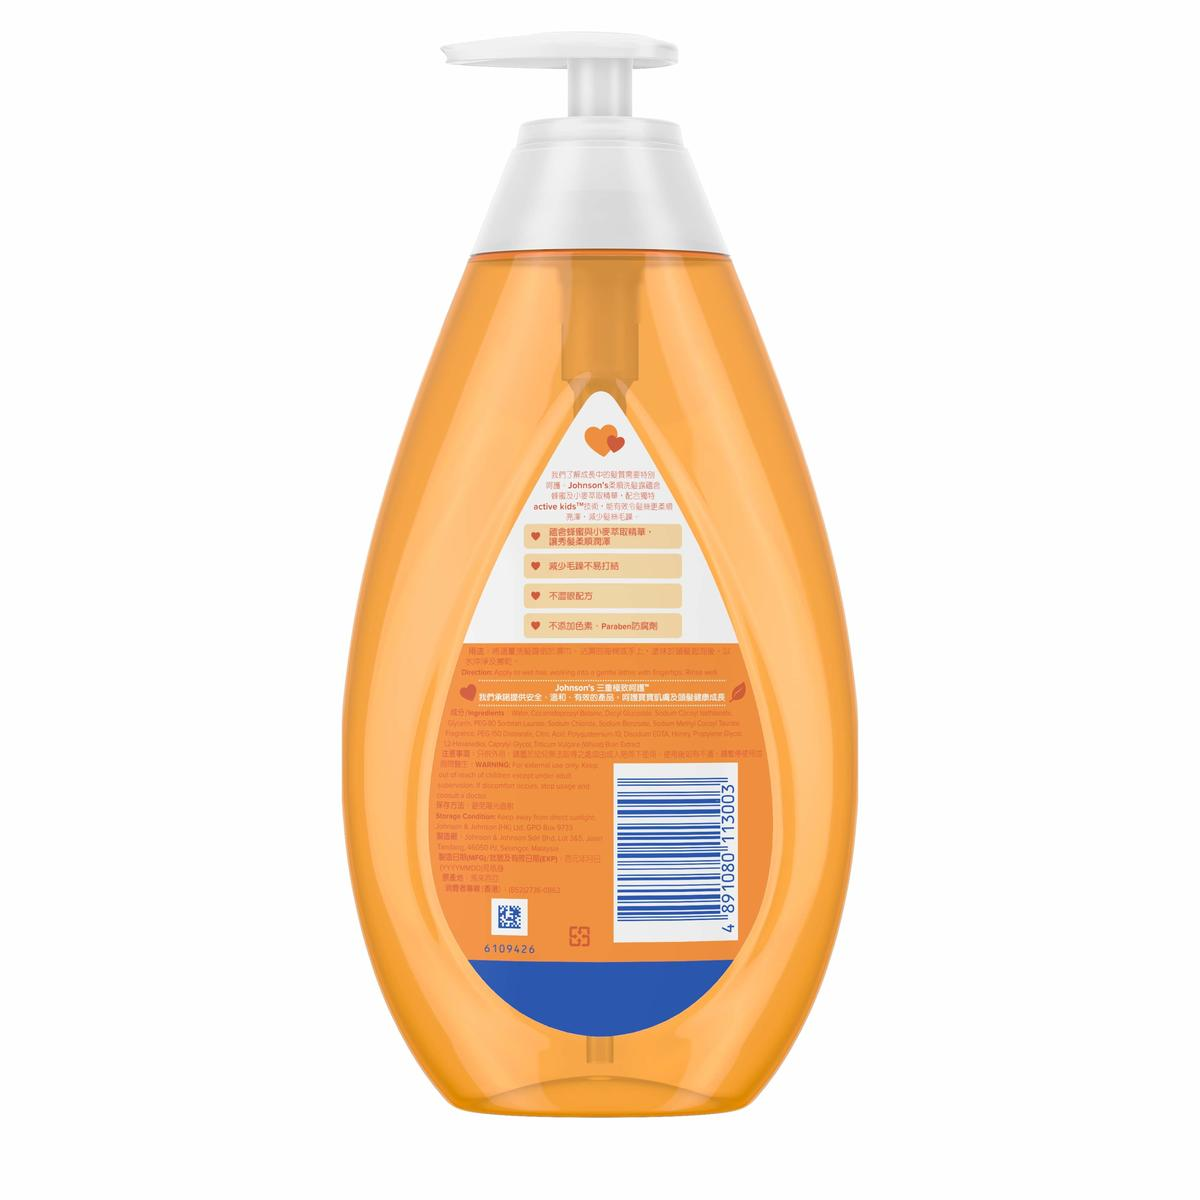 active-kids-soft-smooth-shampoo-800ml-back.jpg